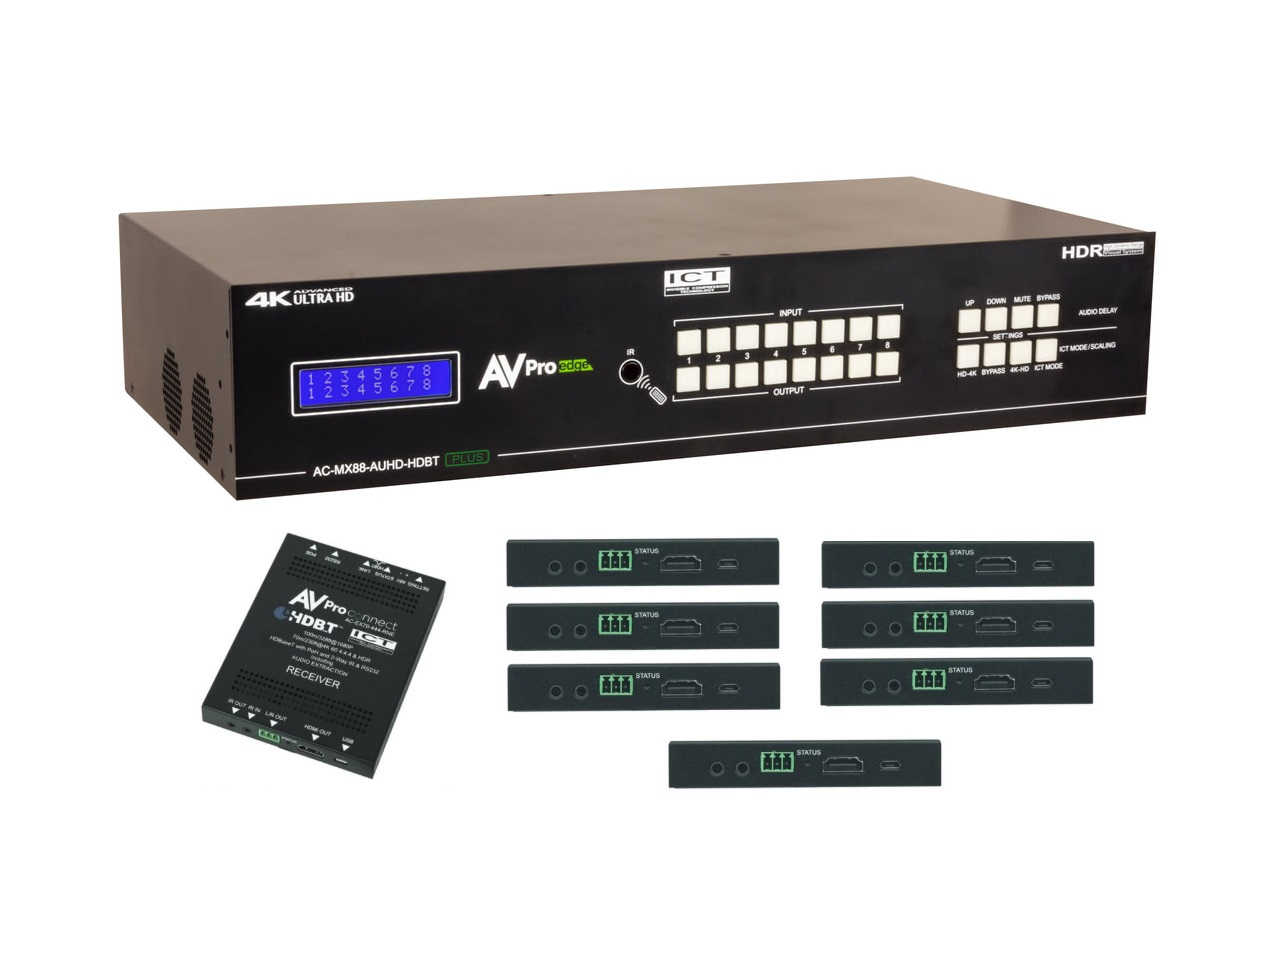 AC-MX88-AUHD-HDBT-P-KIT 18Gbps True 4K60 8x8 HDMI/Audio Matrix Switcher Kit by AVPro Edge